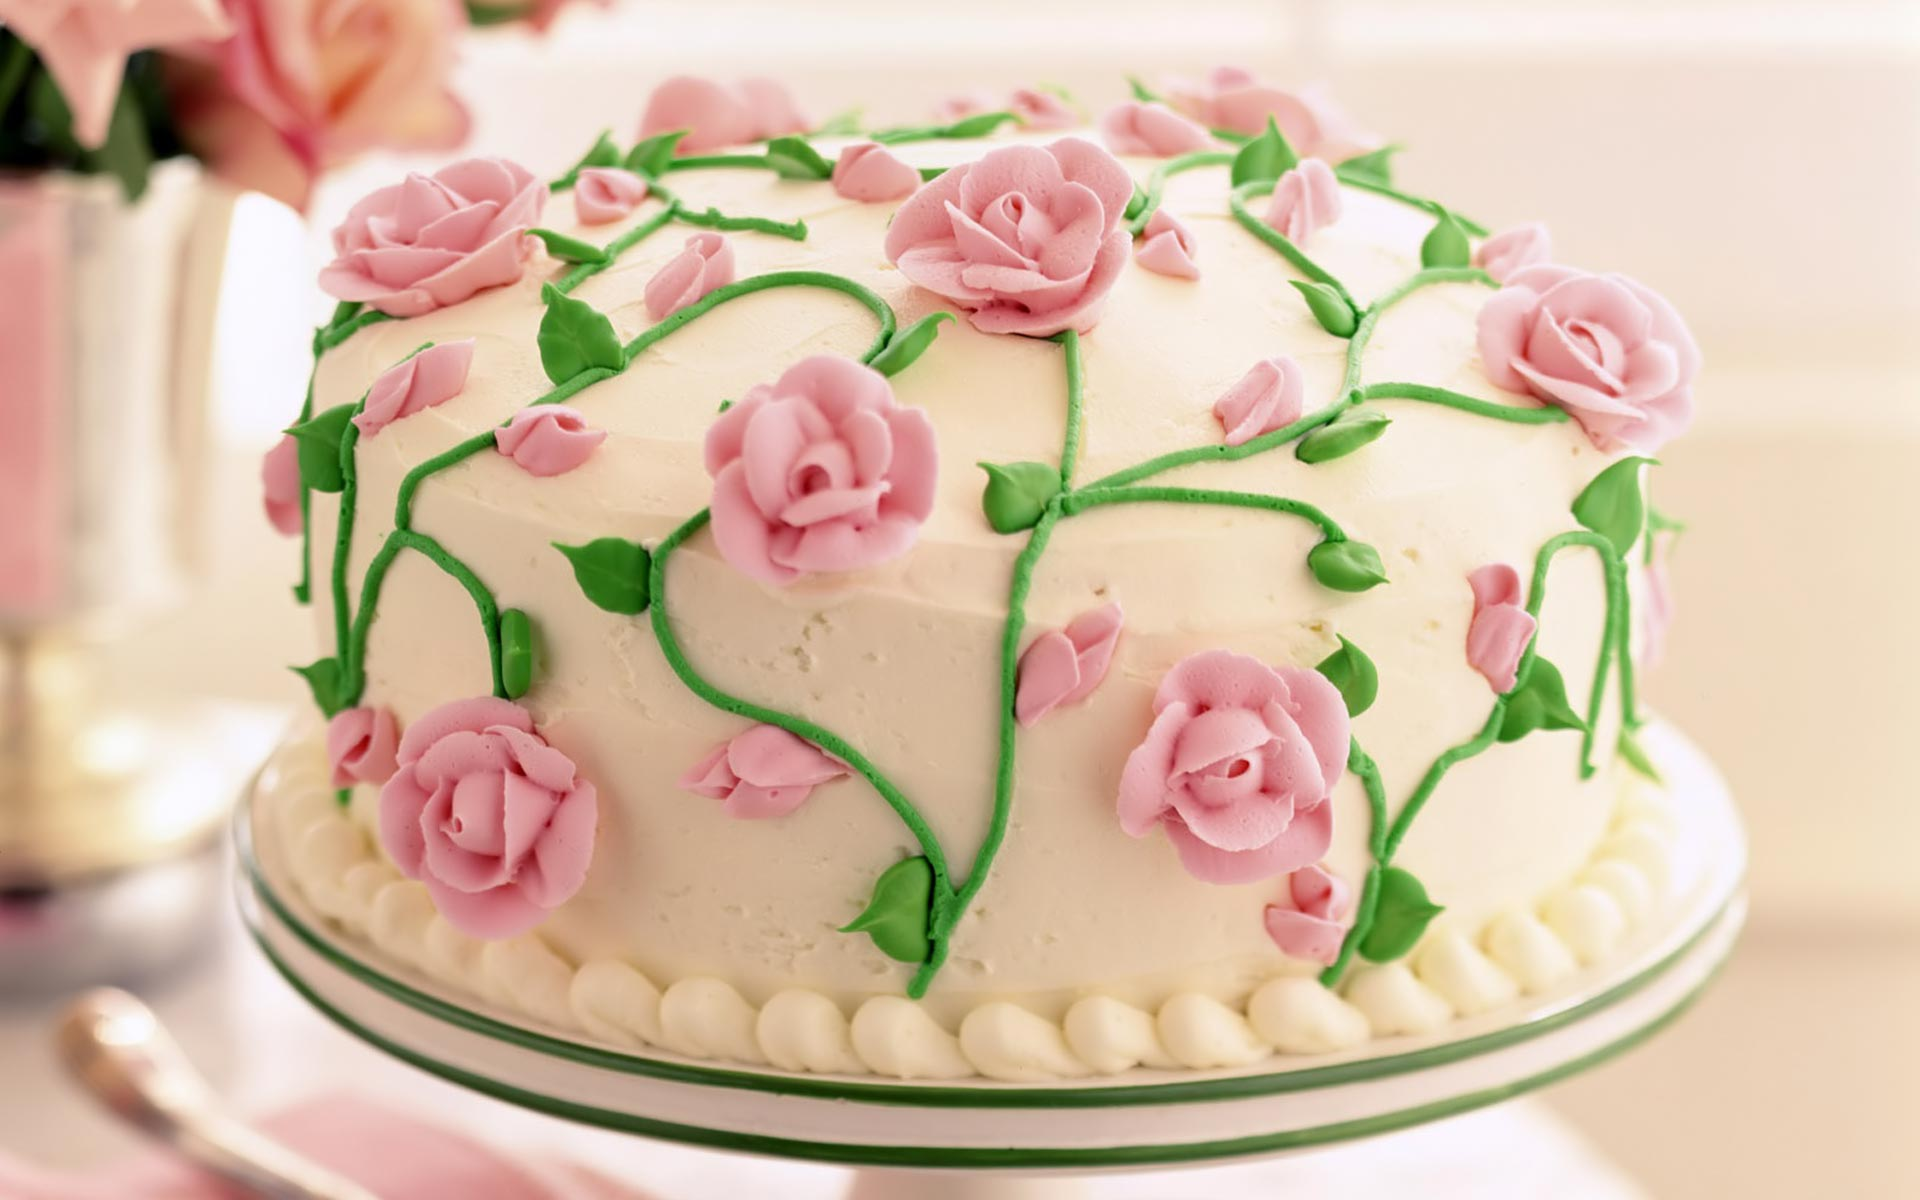 Cute Cake Images Hd : Download Wedding Cakes 7316 1920x1200 px High Resolution ...